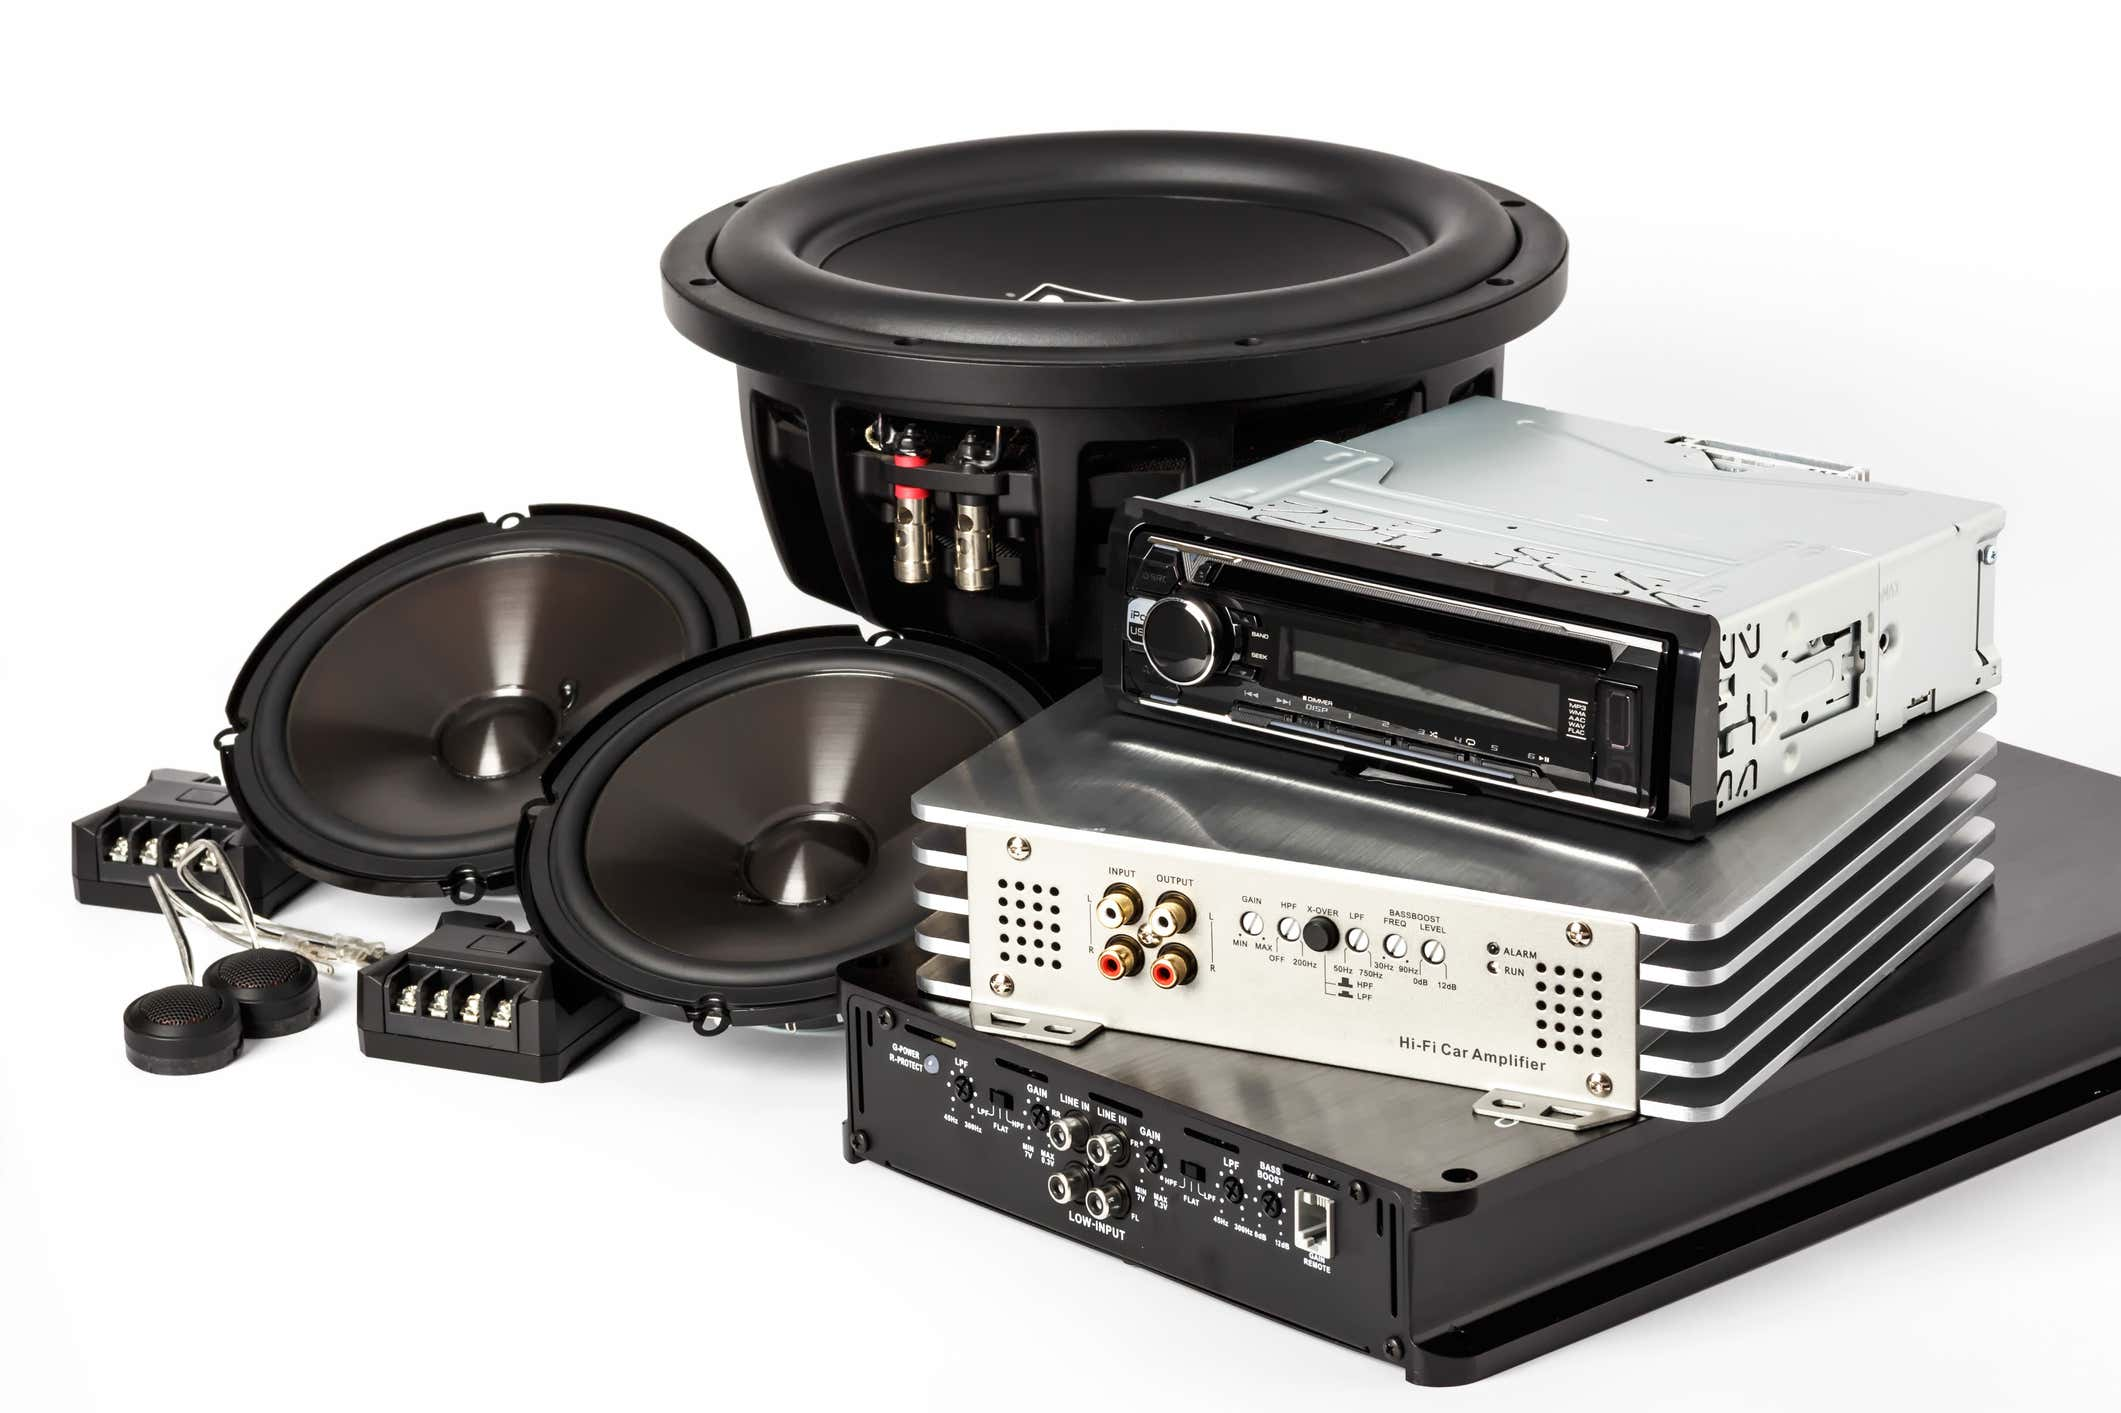 A collection with a car stereo and speakers.